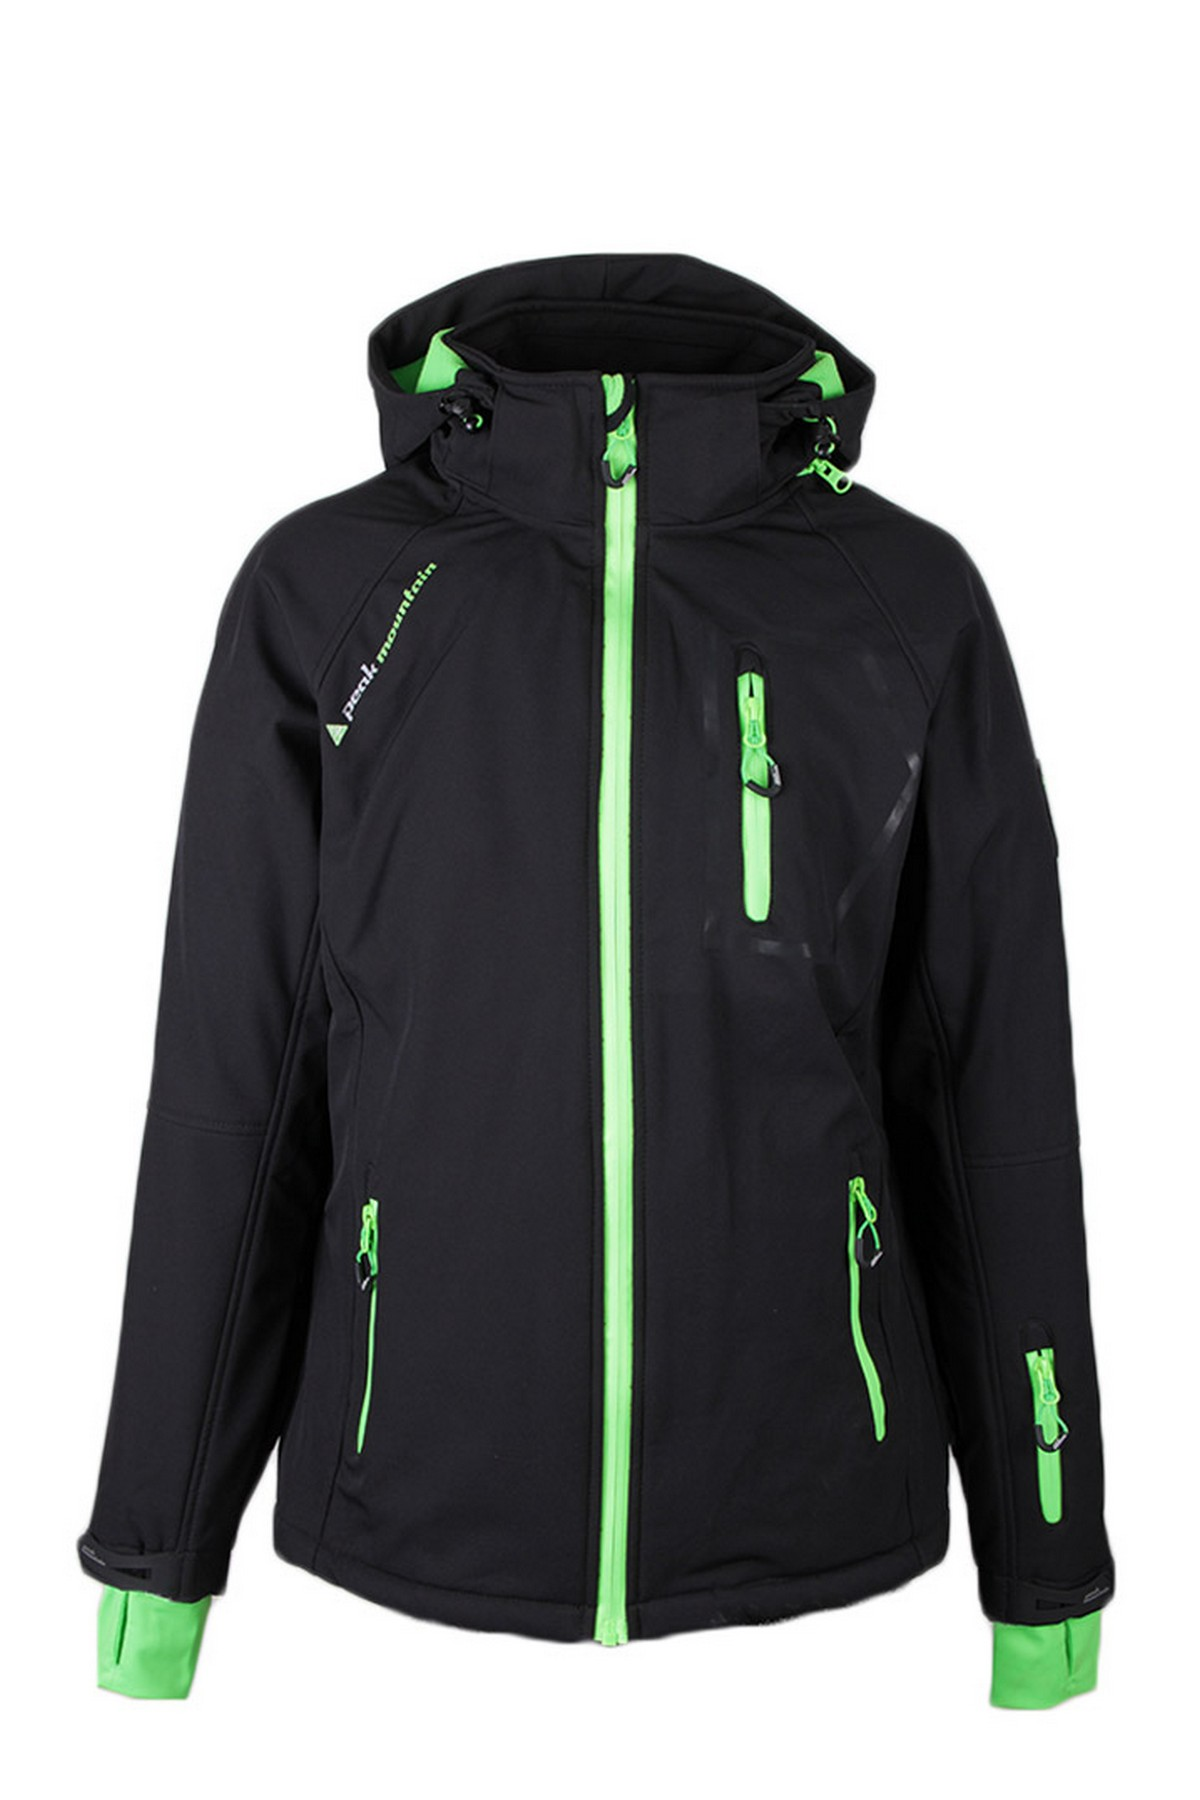 Peak Mountain Man Softshell Erkek Mont (104434-SHYL)